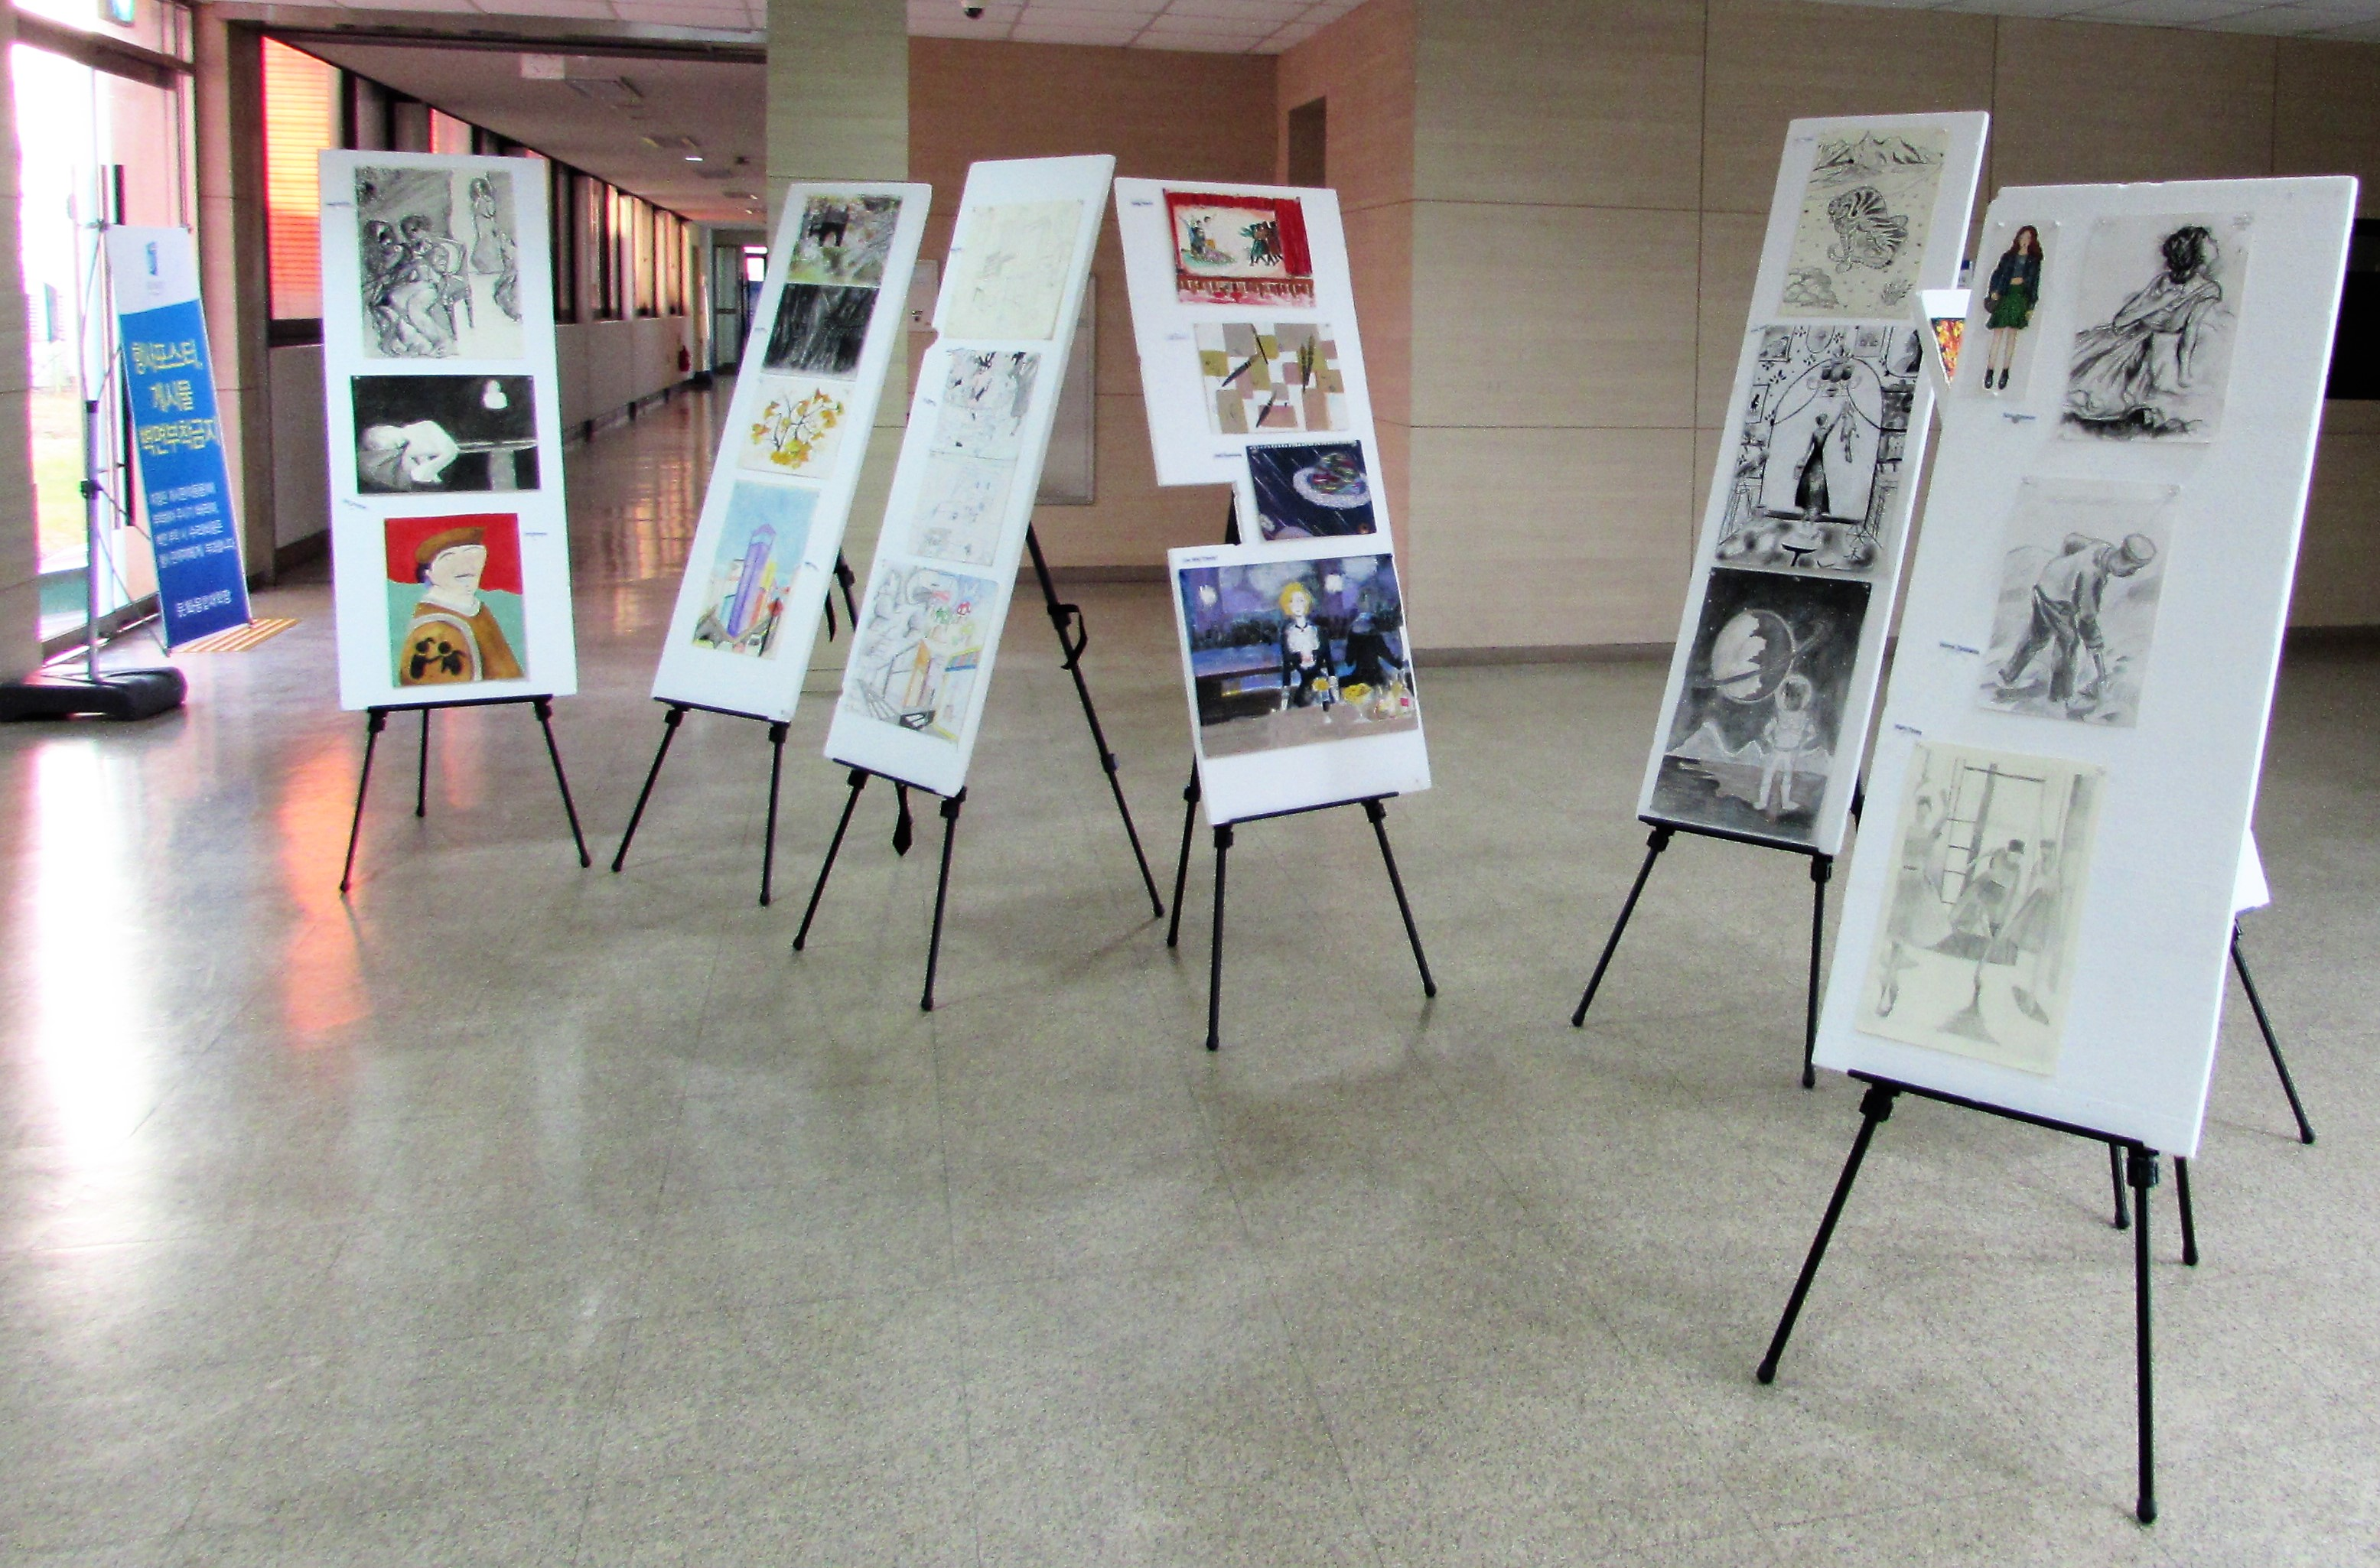 2019 Recital & Art Exhibition